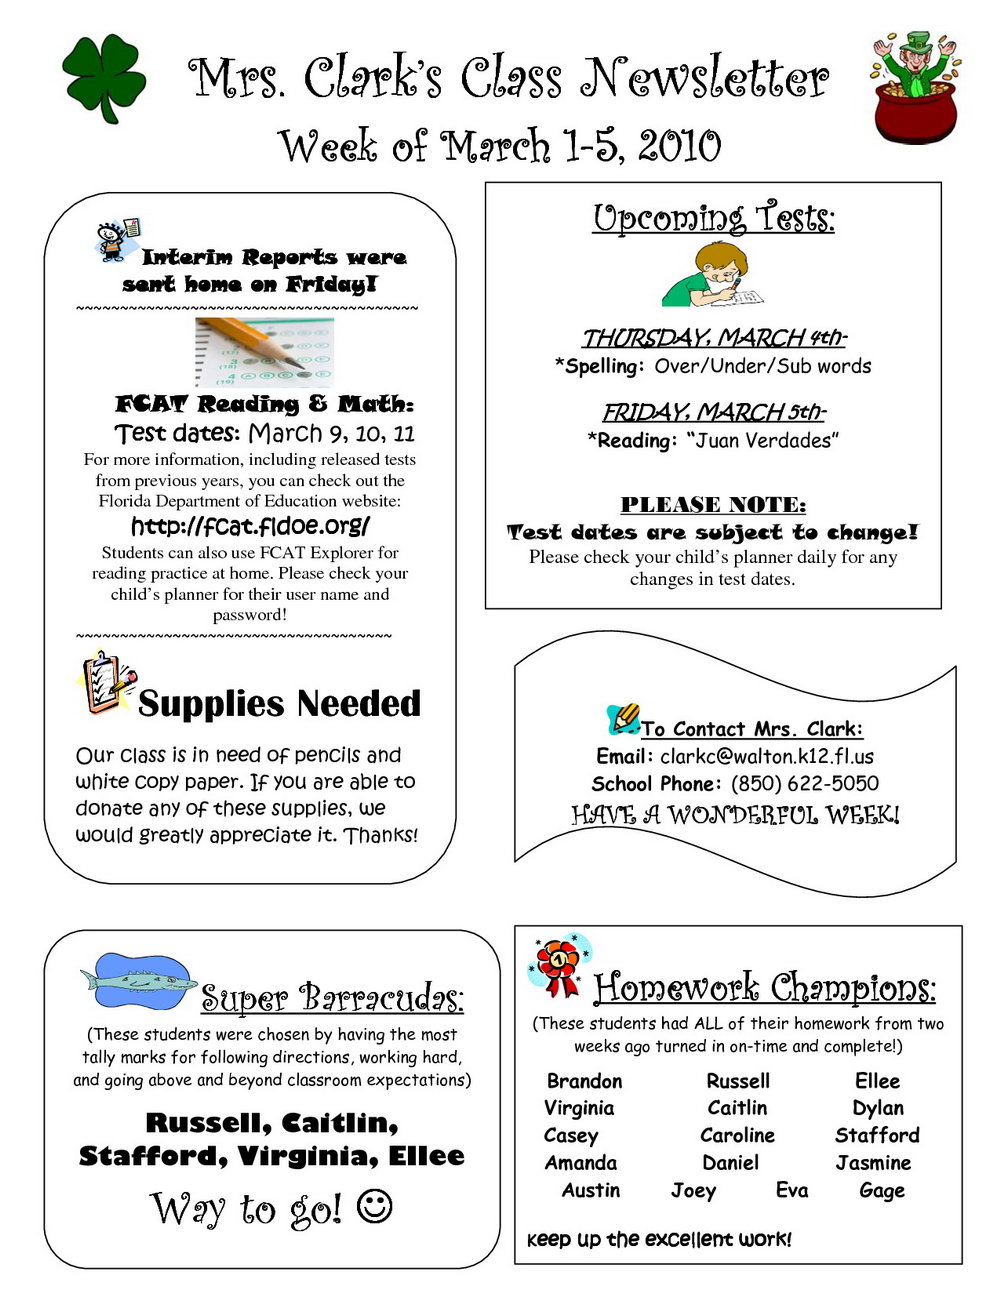 5th Grade Newsletter Template Free